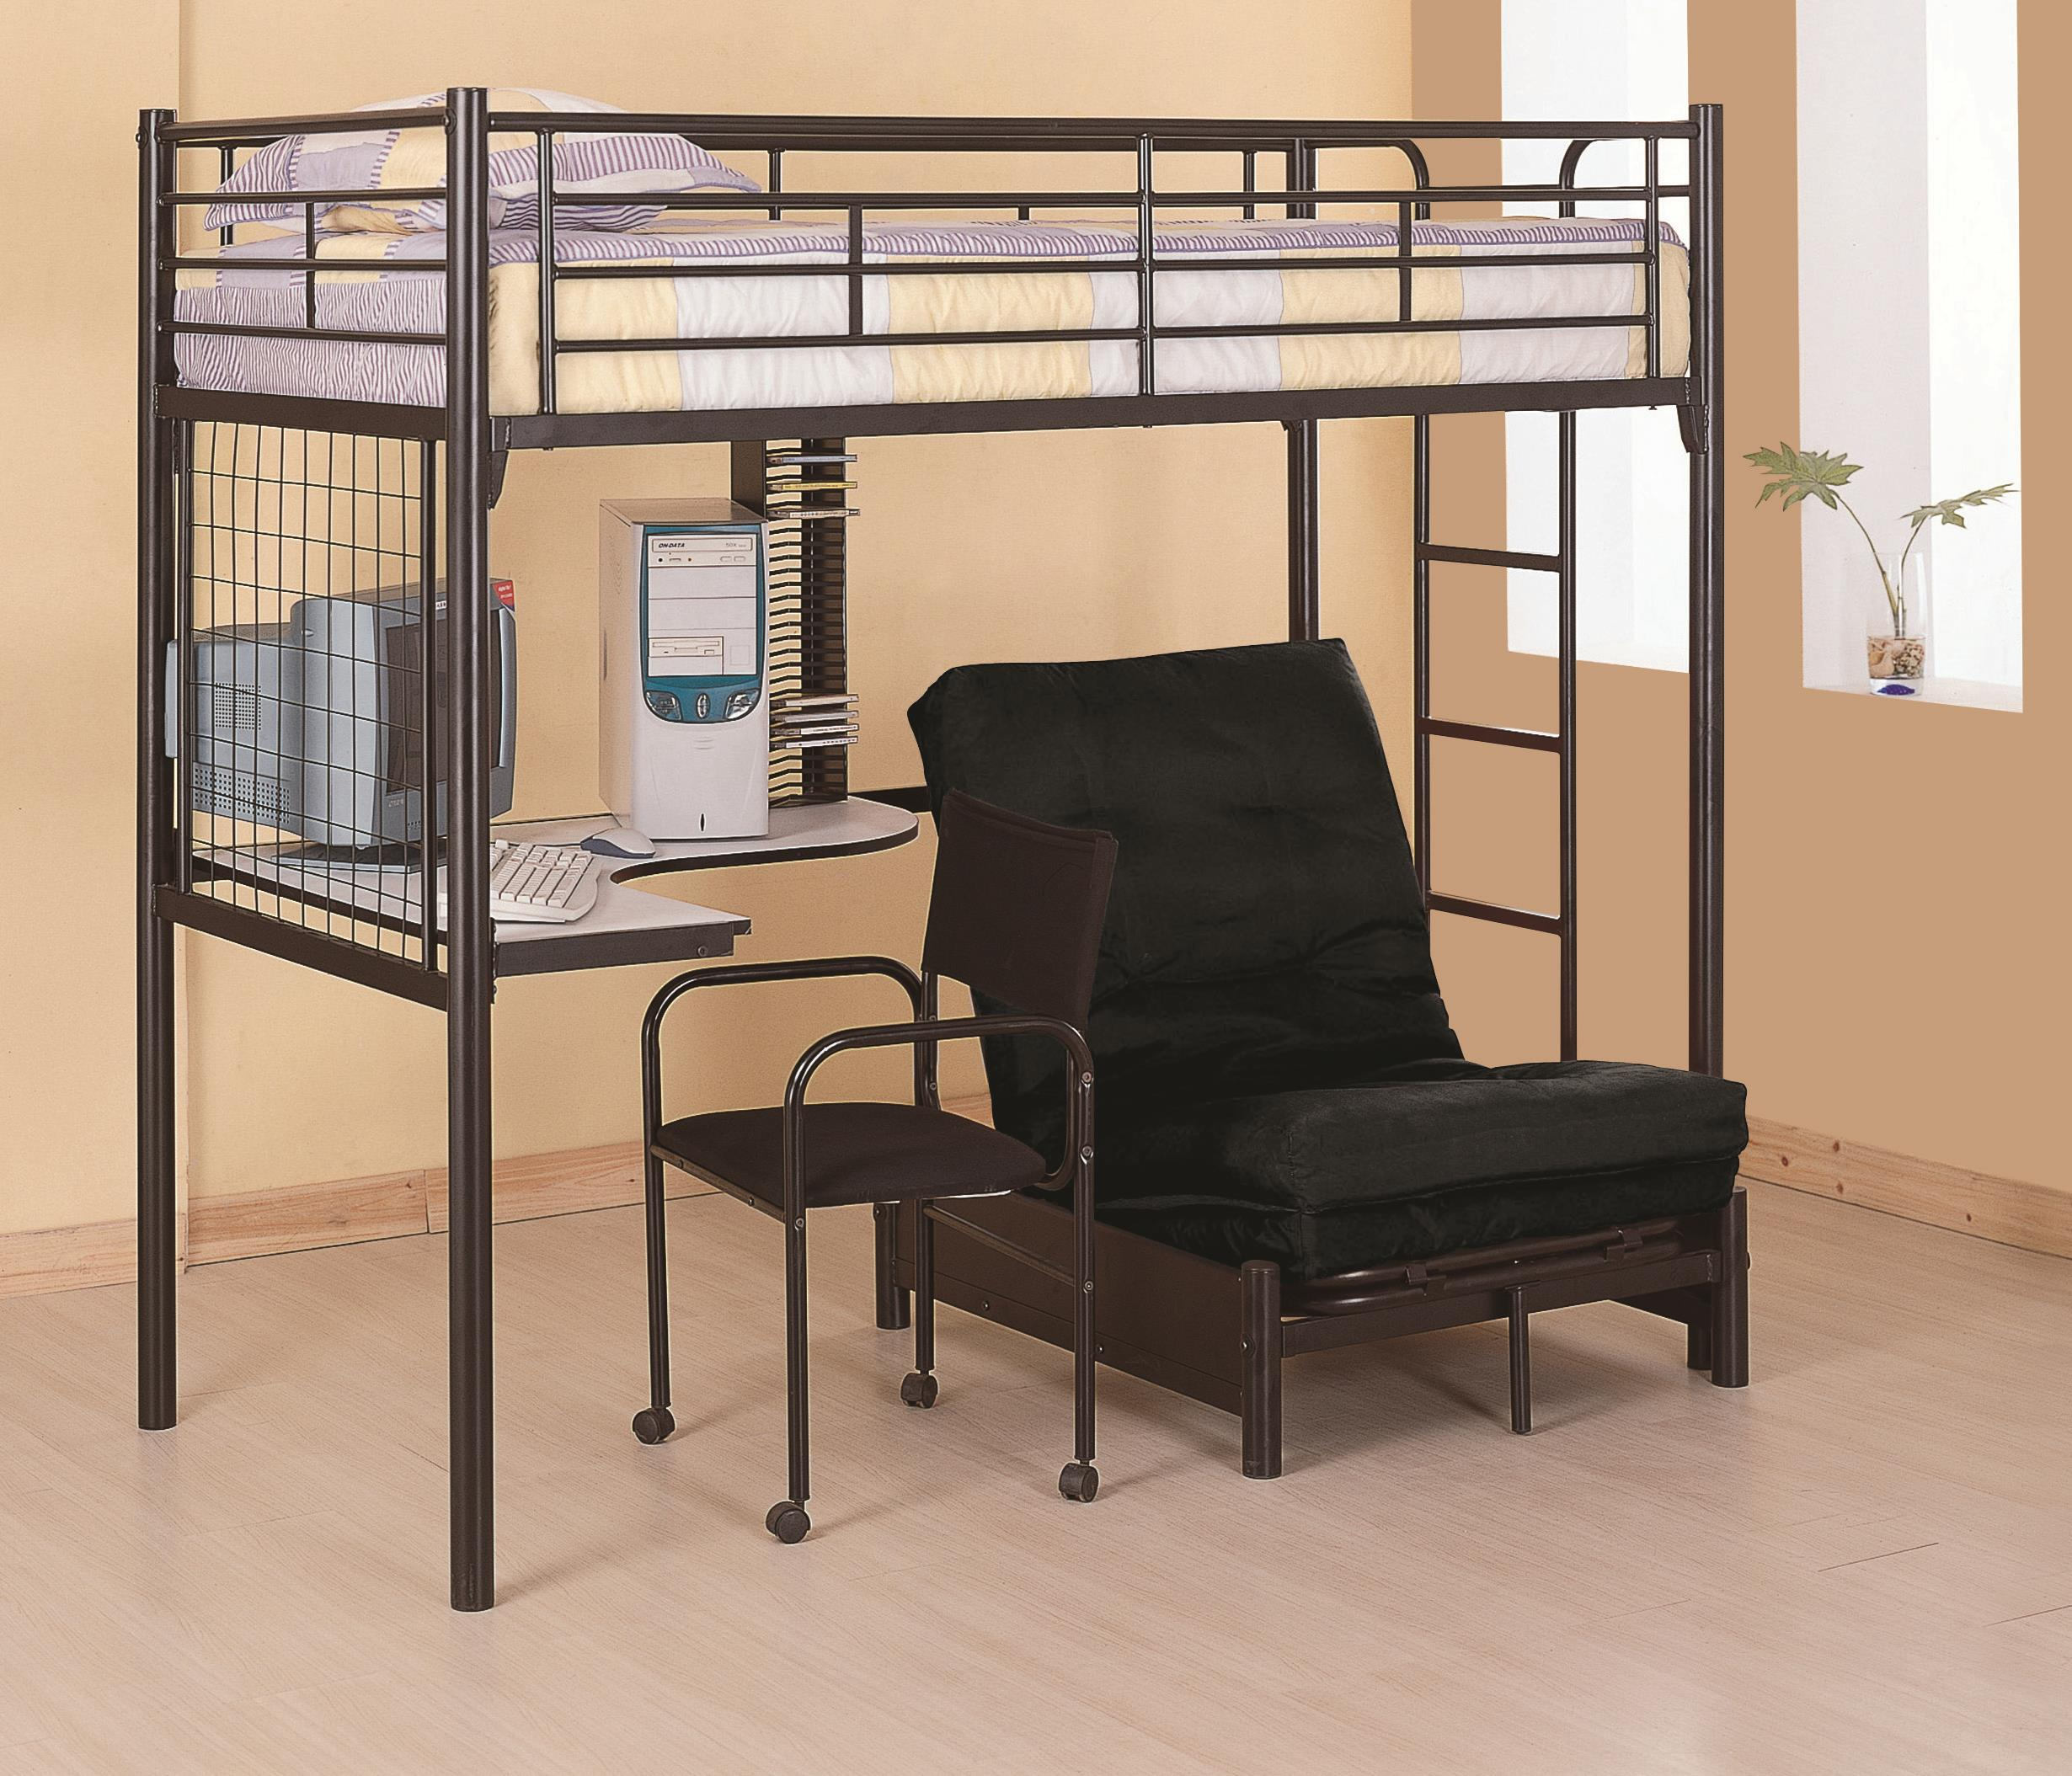 Twin Loft Bunk Bed With Futon Chair